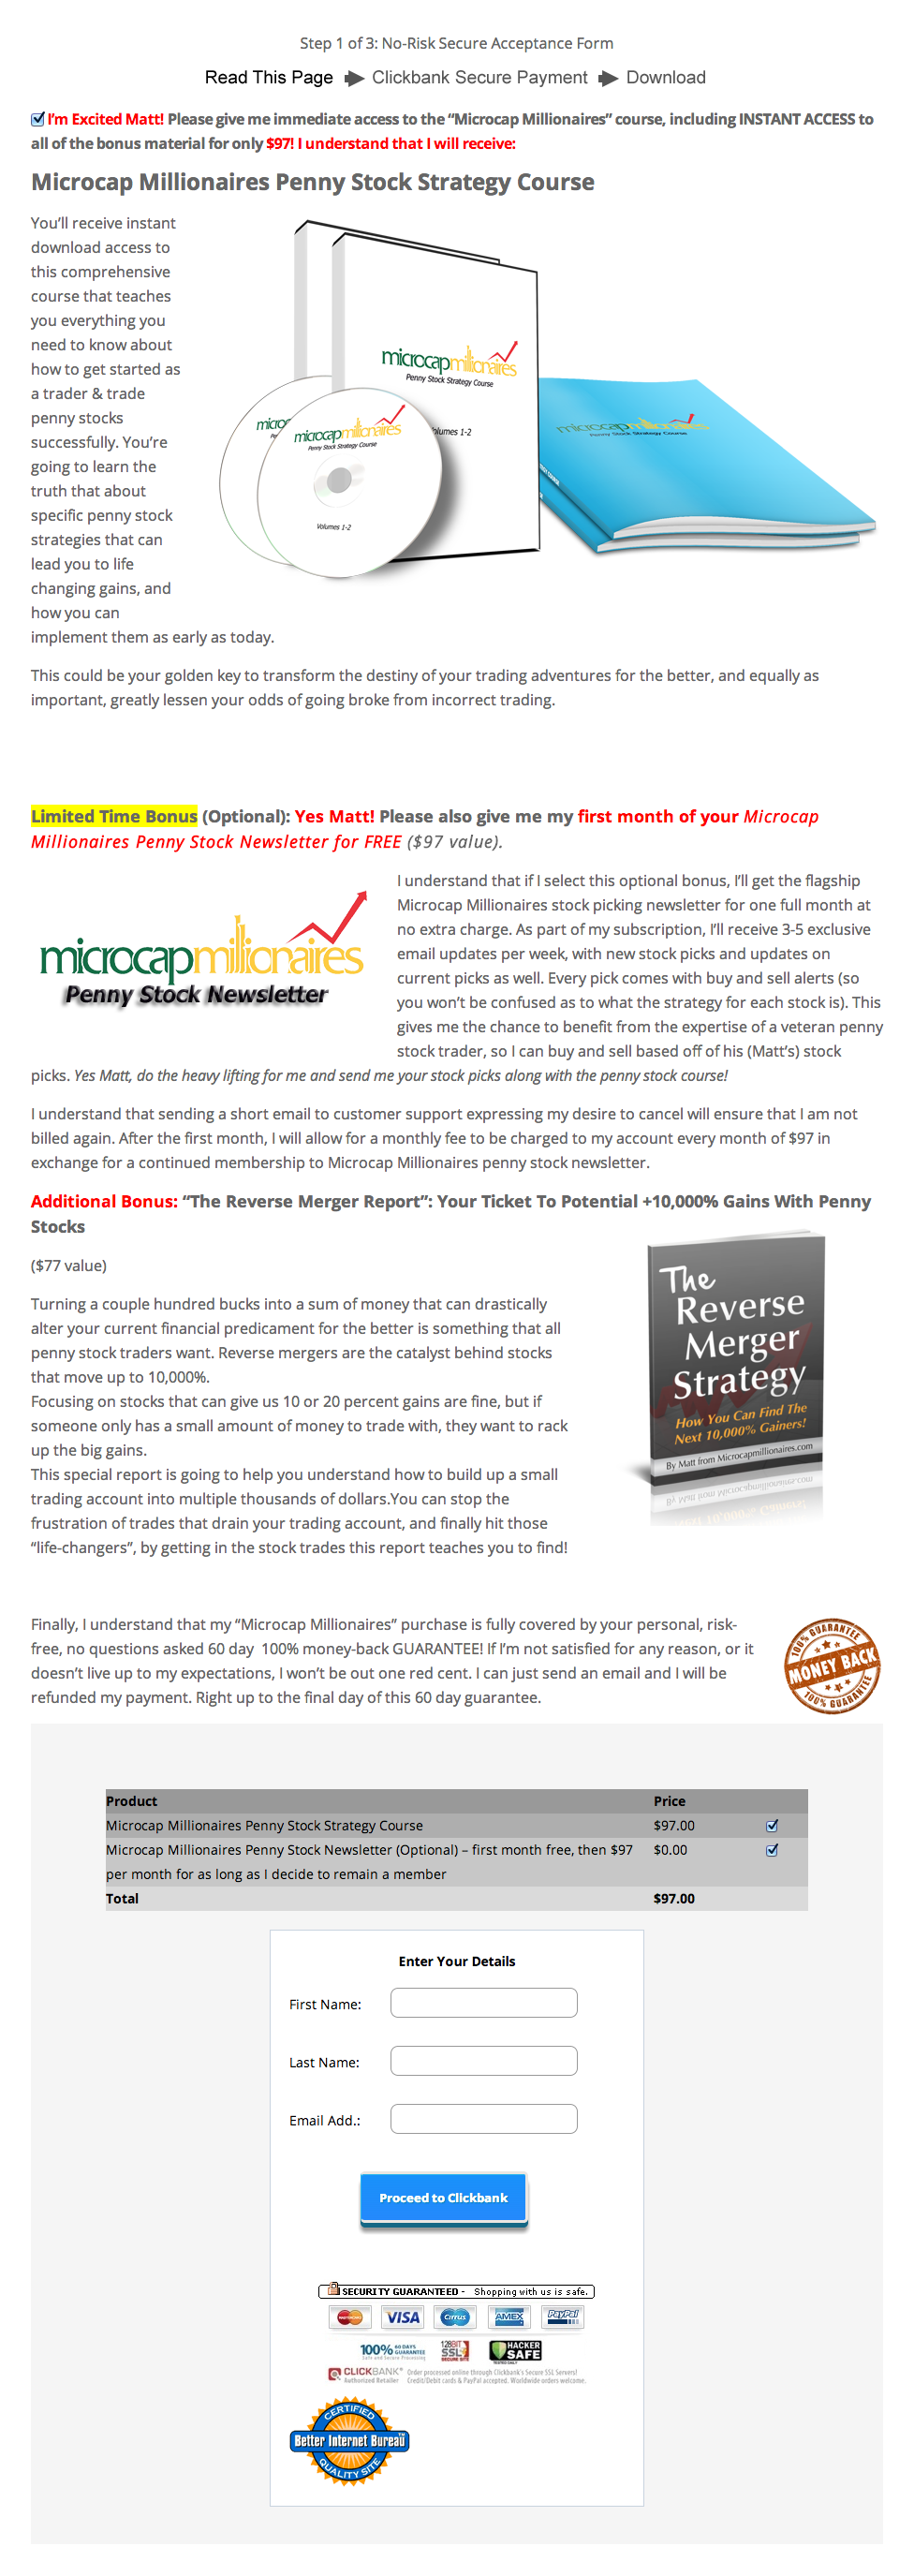 Step 1 For Penny Stock Strategy & Newsletter Checkout